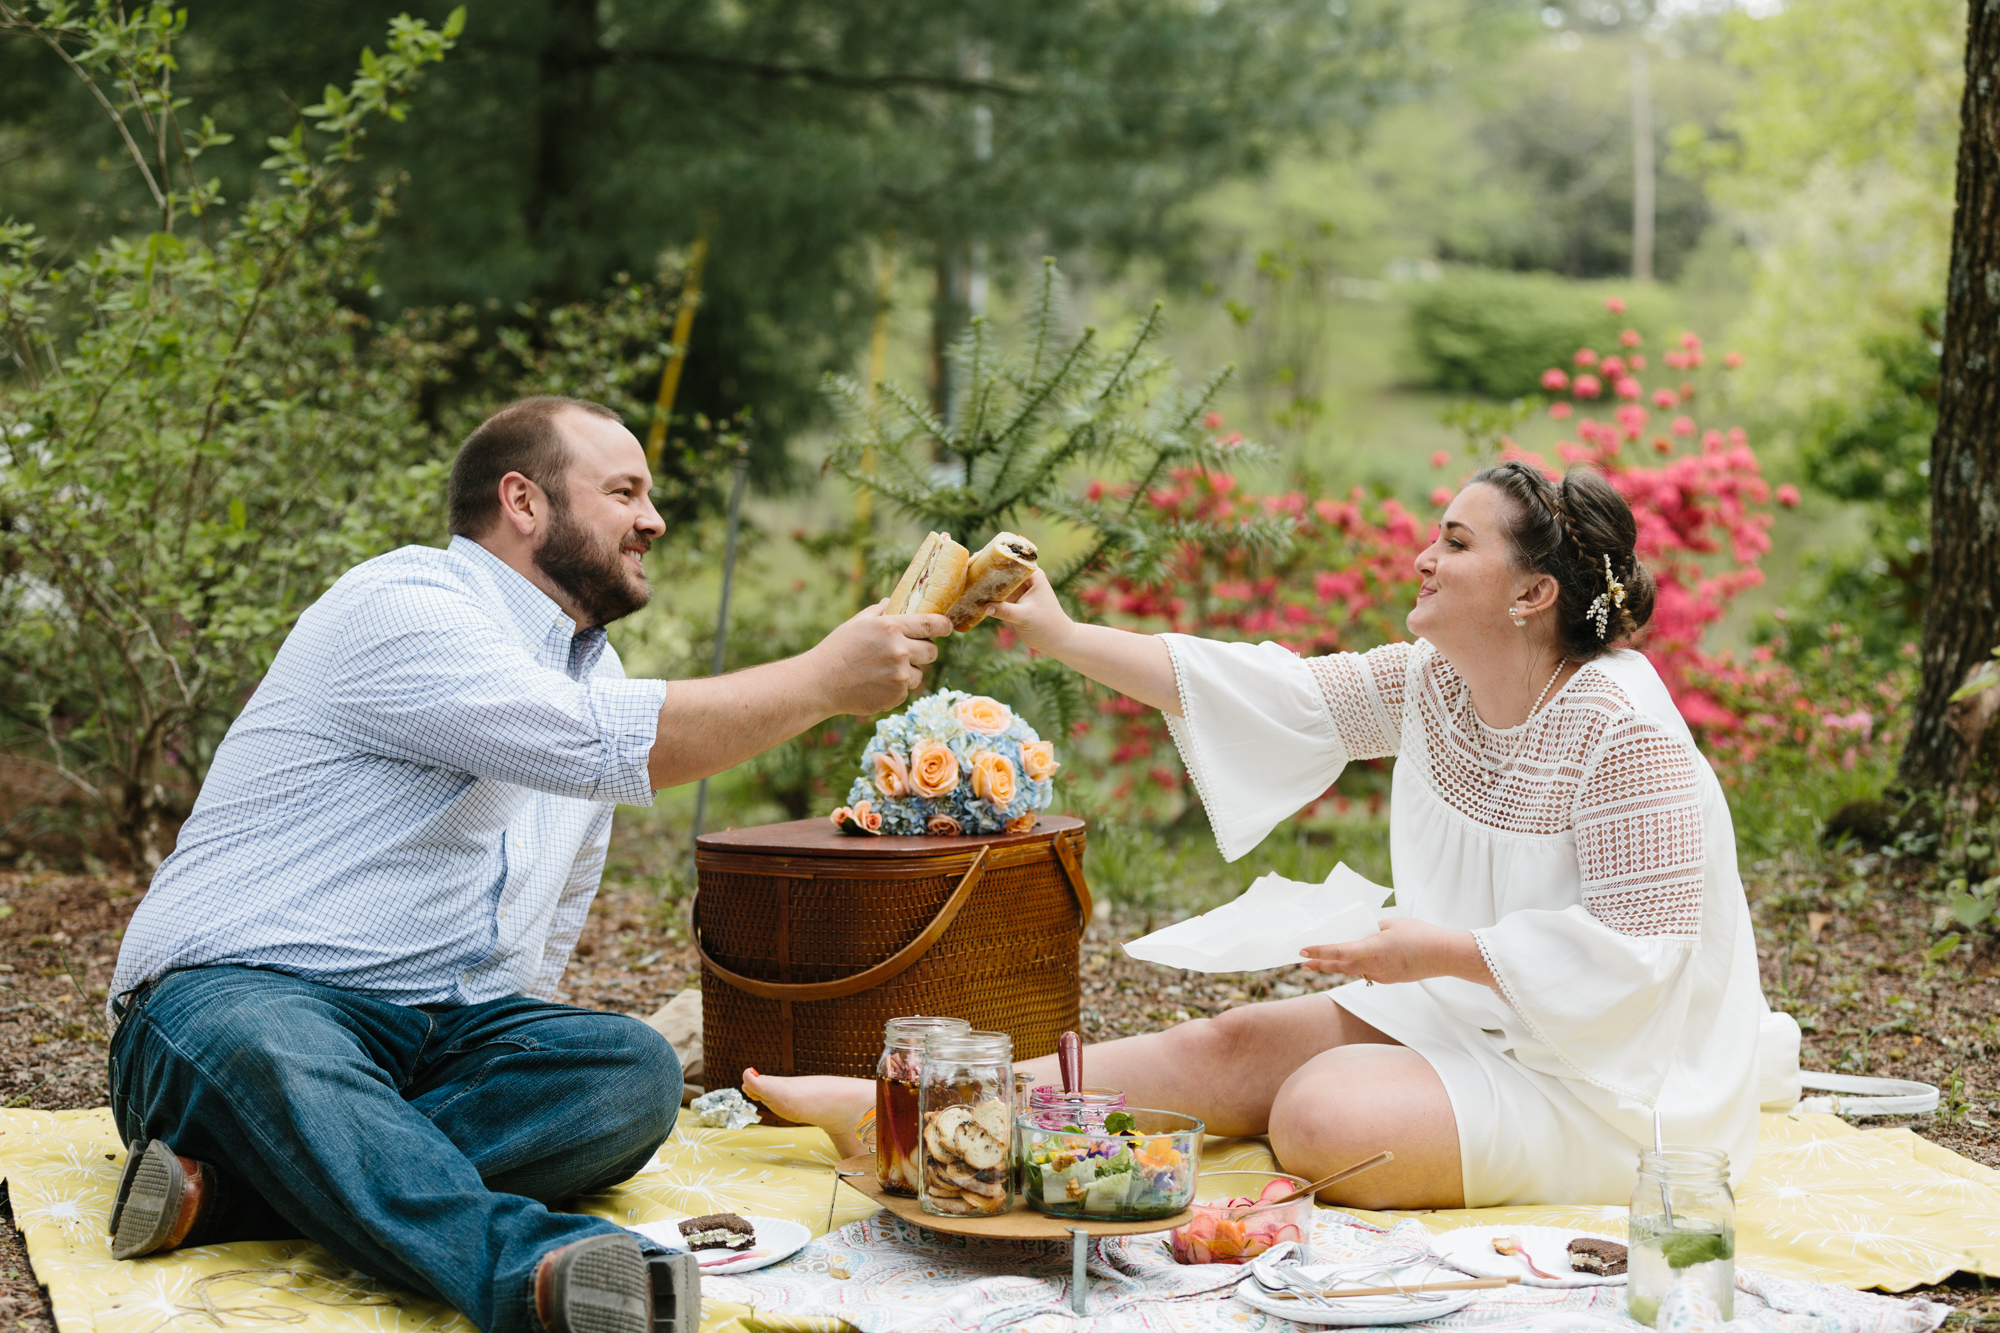 Photography from Natalie and Kyle's elopement wedding in Bloomington, Indiana.